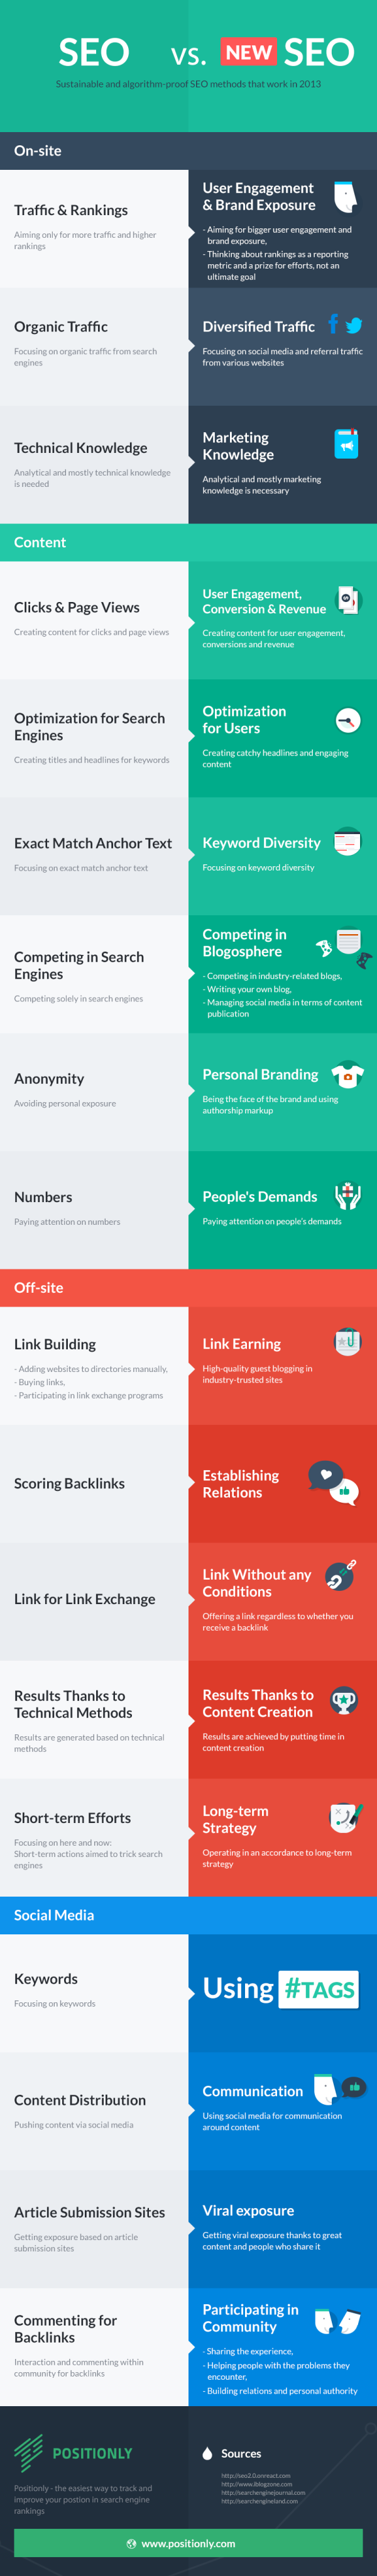 The New Rules of Search Engine Optimization (Infographic) image seo rules inf resized 600